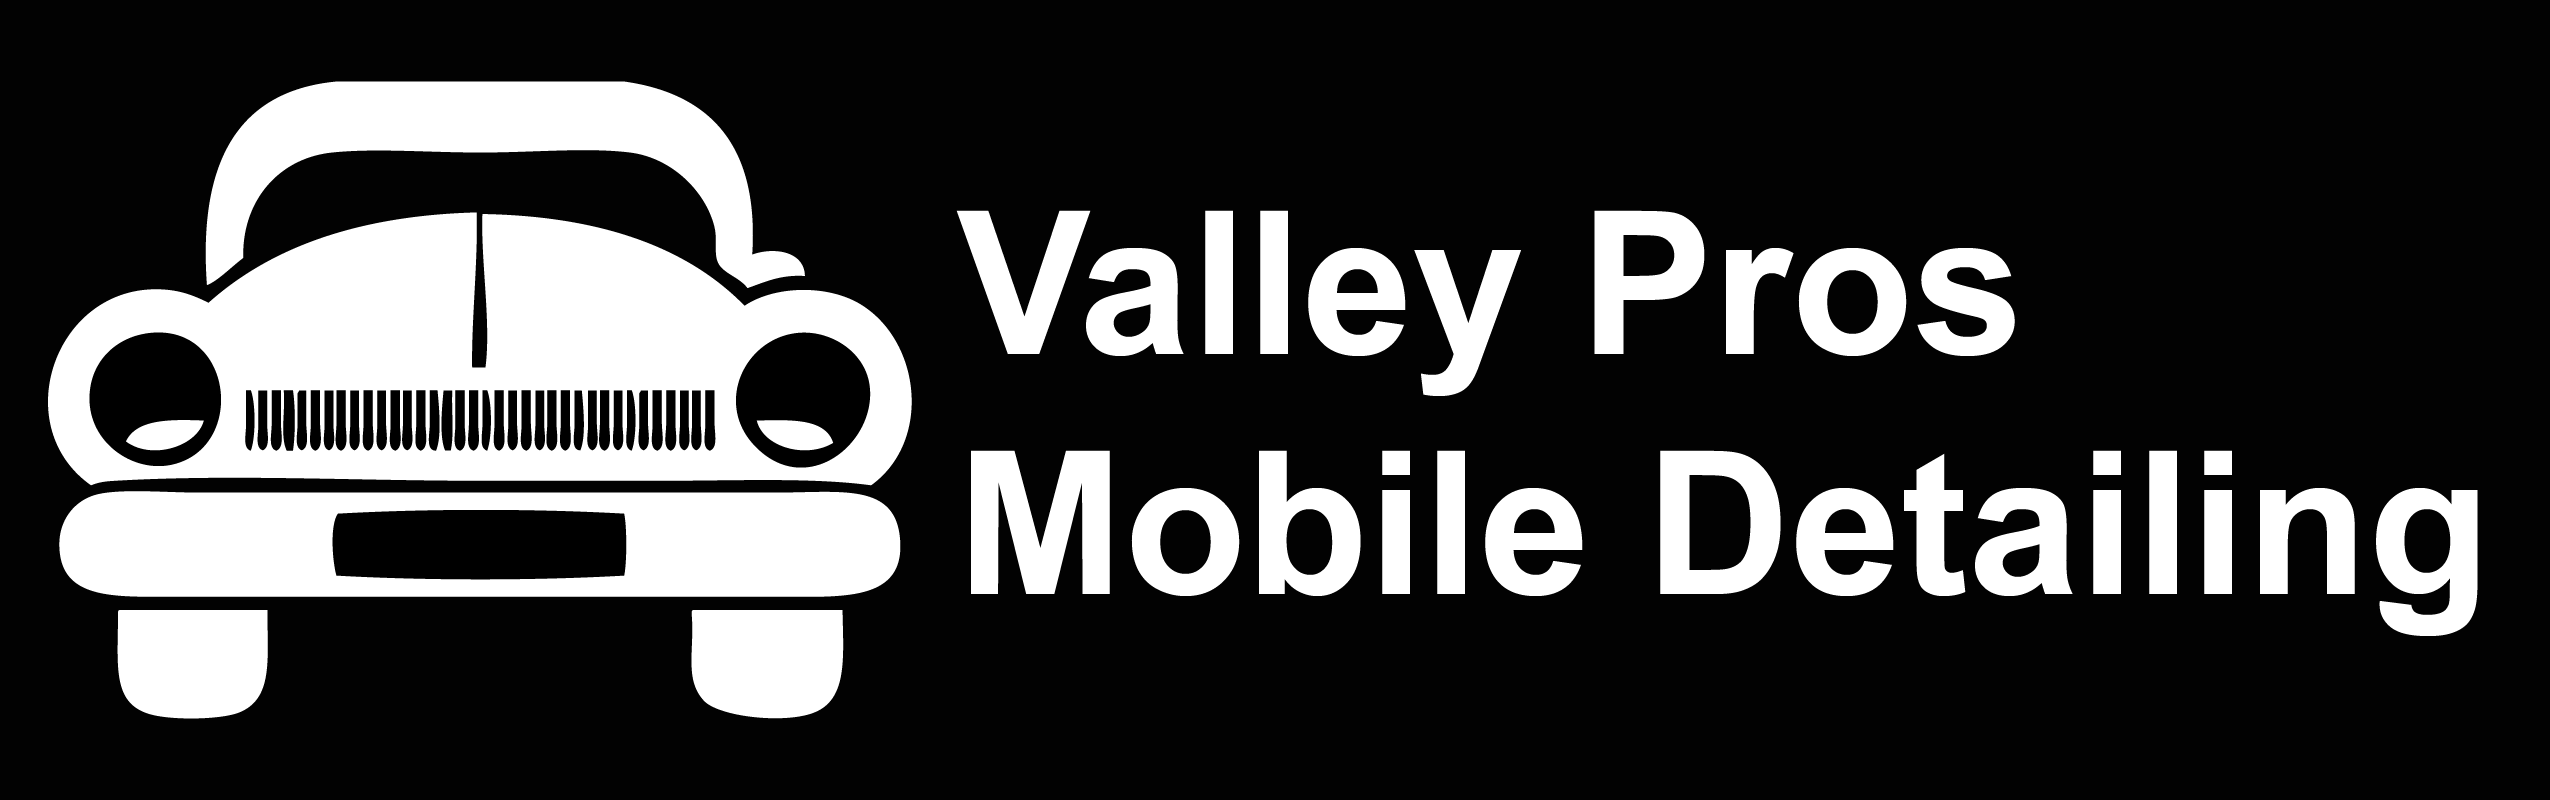 Valley Pros Mobile Detailing